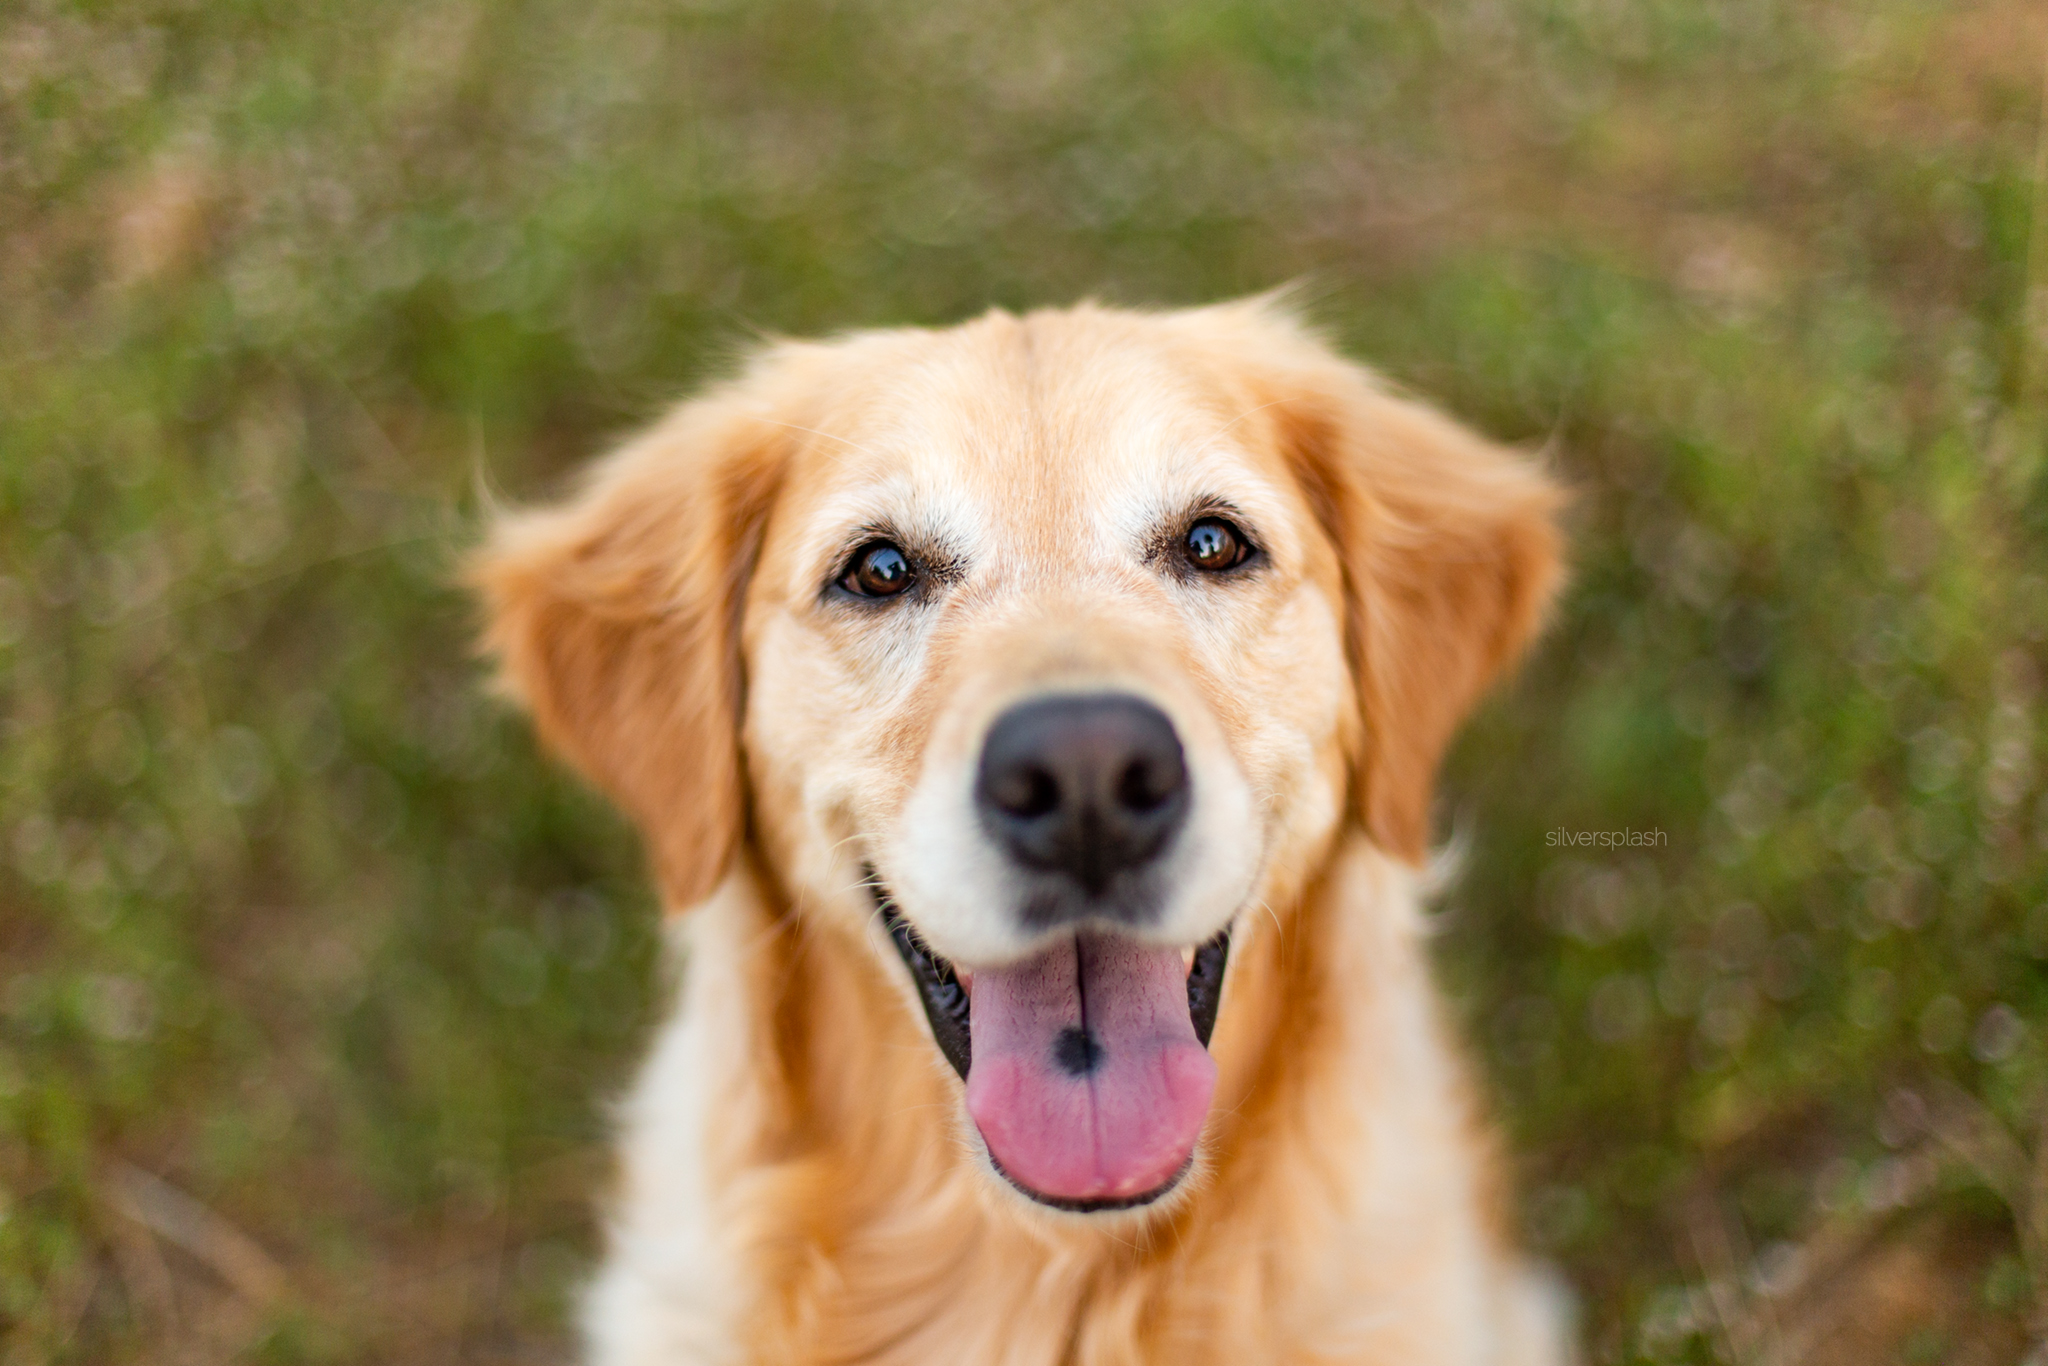 silver-splash-photo-happy-golden-retriever-dog-p.jpg